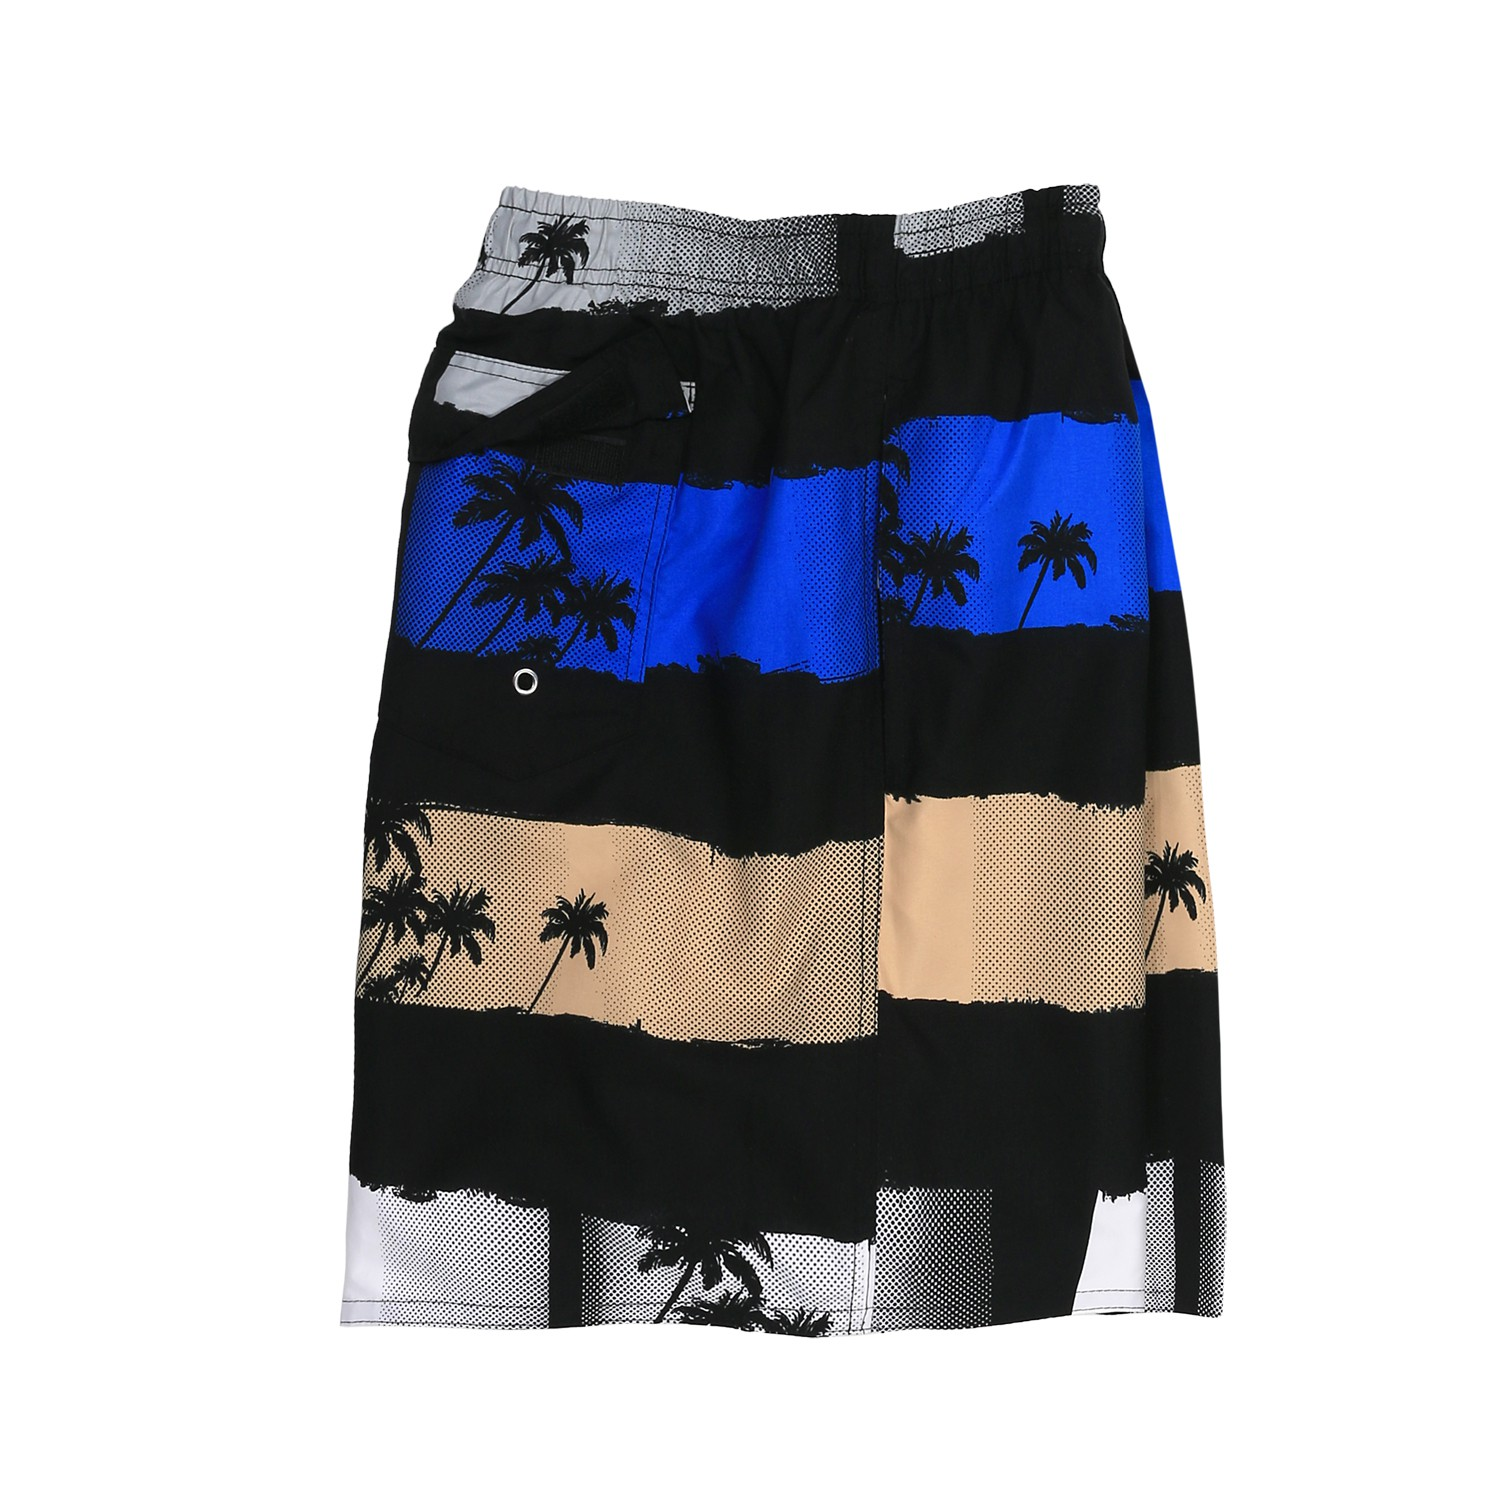 Detail Image to Swimming Trunks by Adamo, black/beige/blue, in plus size up to 5XL